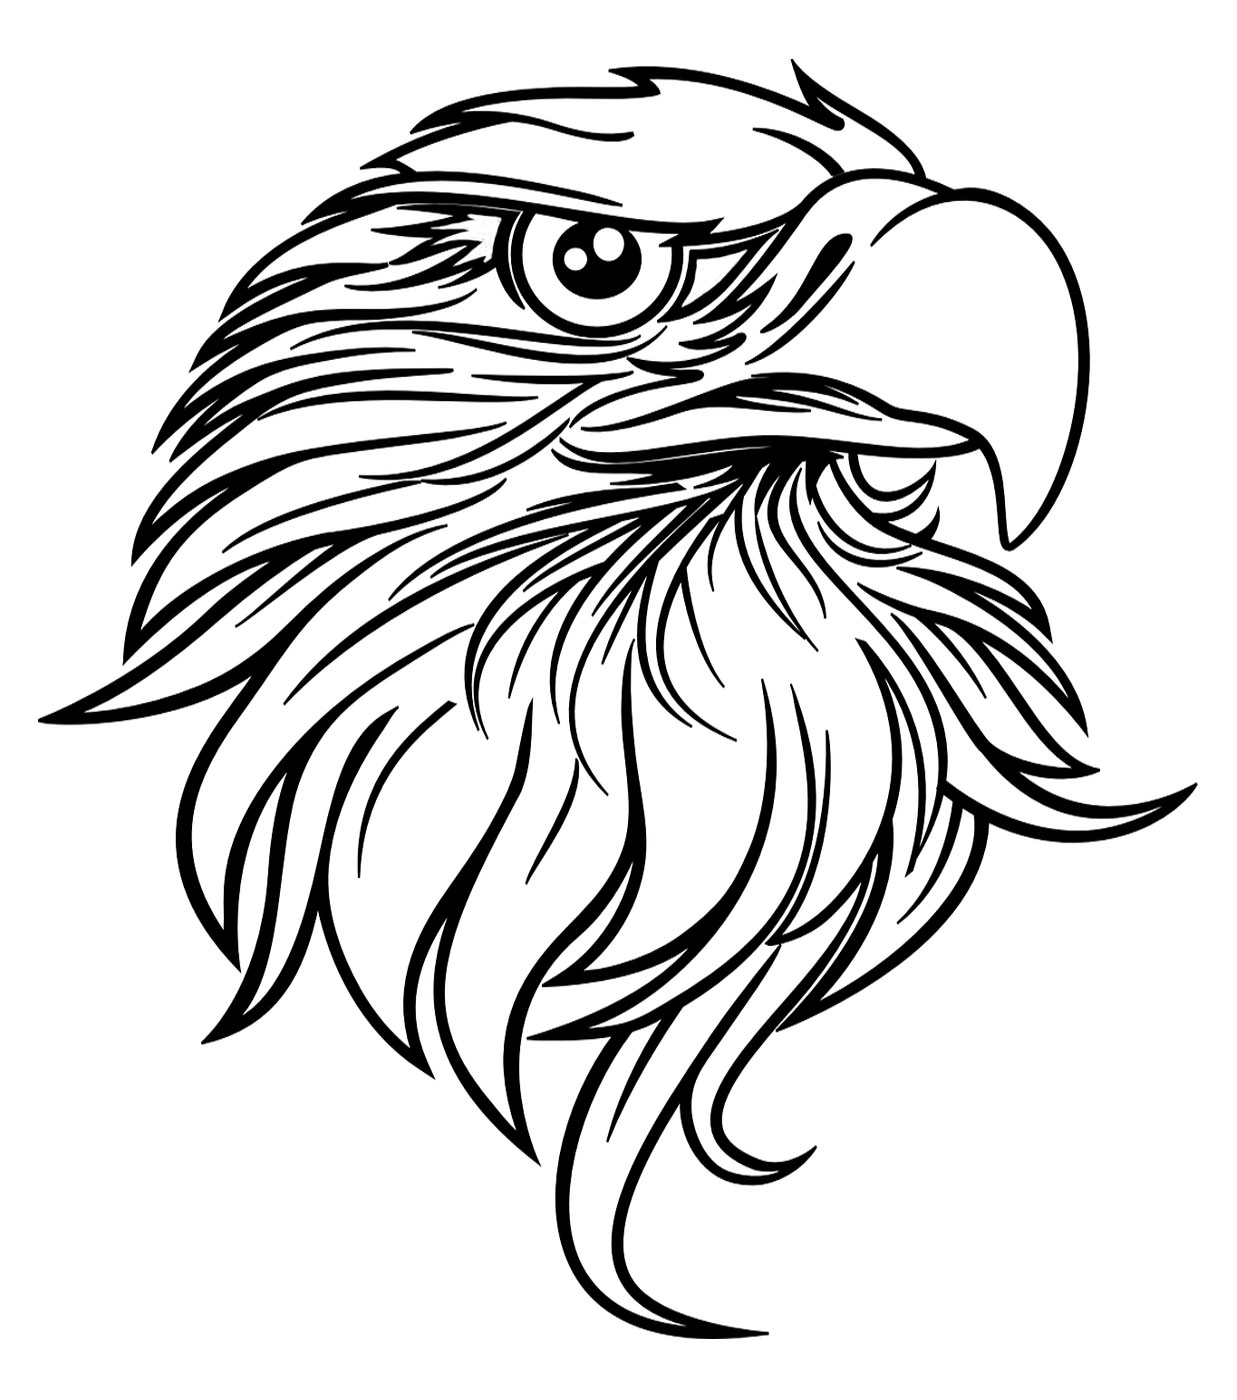 free printable eagle coloring pages 21 best eagle coloring pages images on pinterest free eagle pages printable coloring